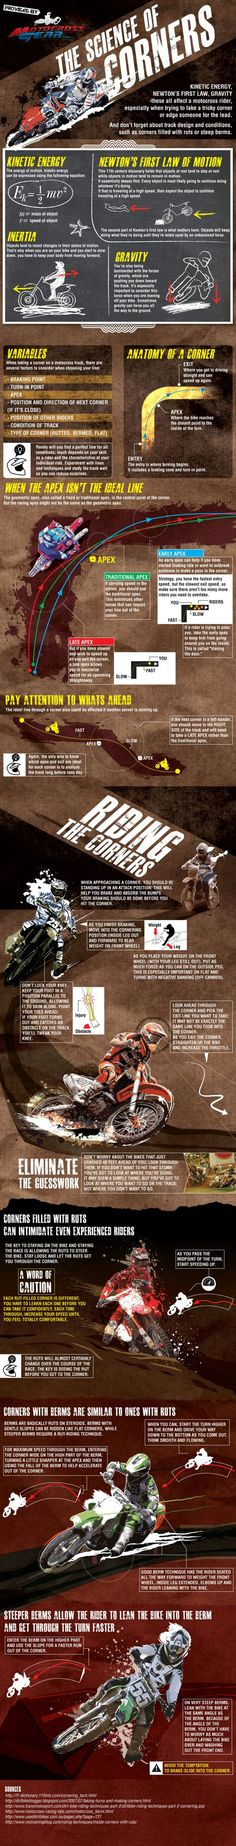 Infographic about how to corner on a motorcycle | Motorcycle riding tips…